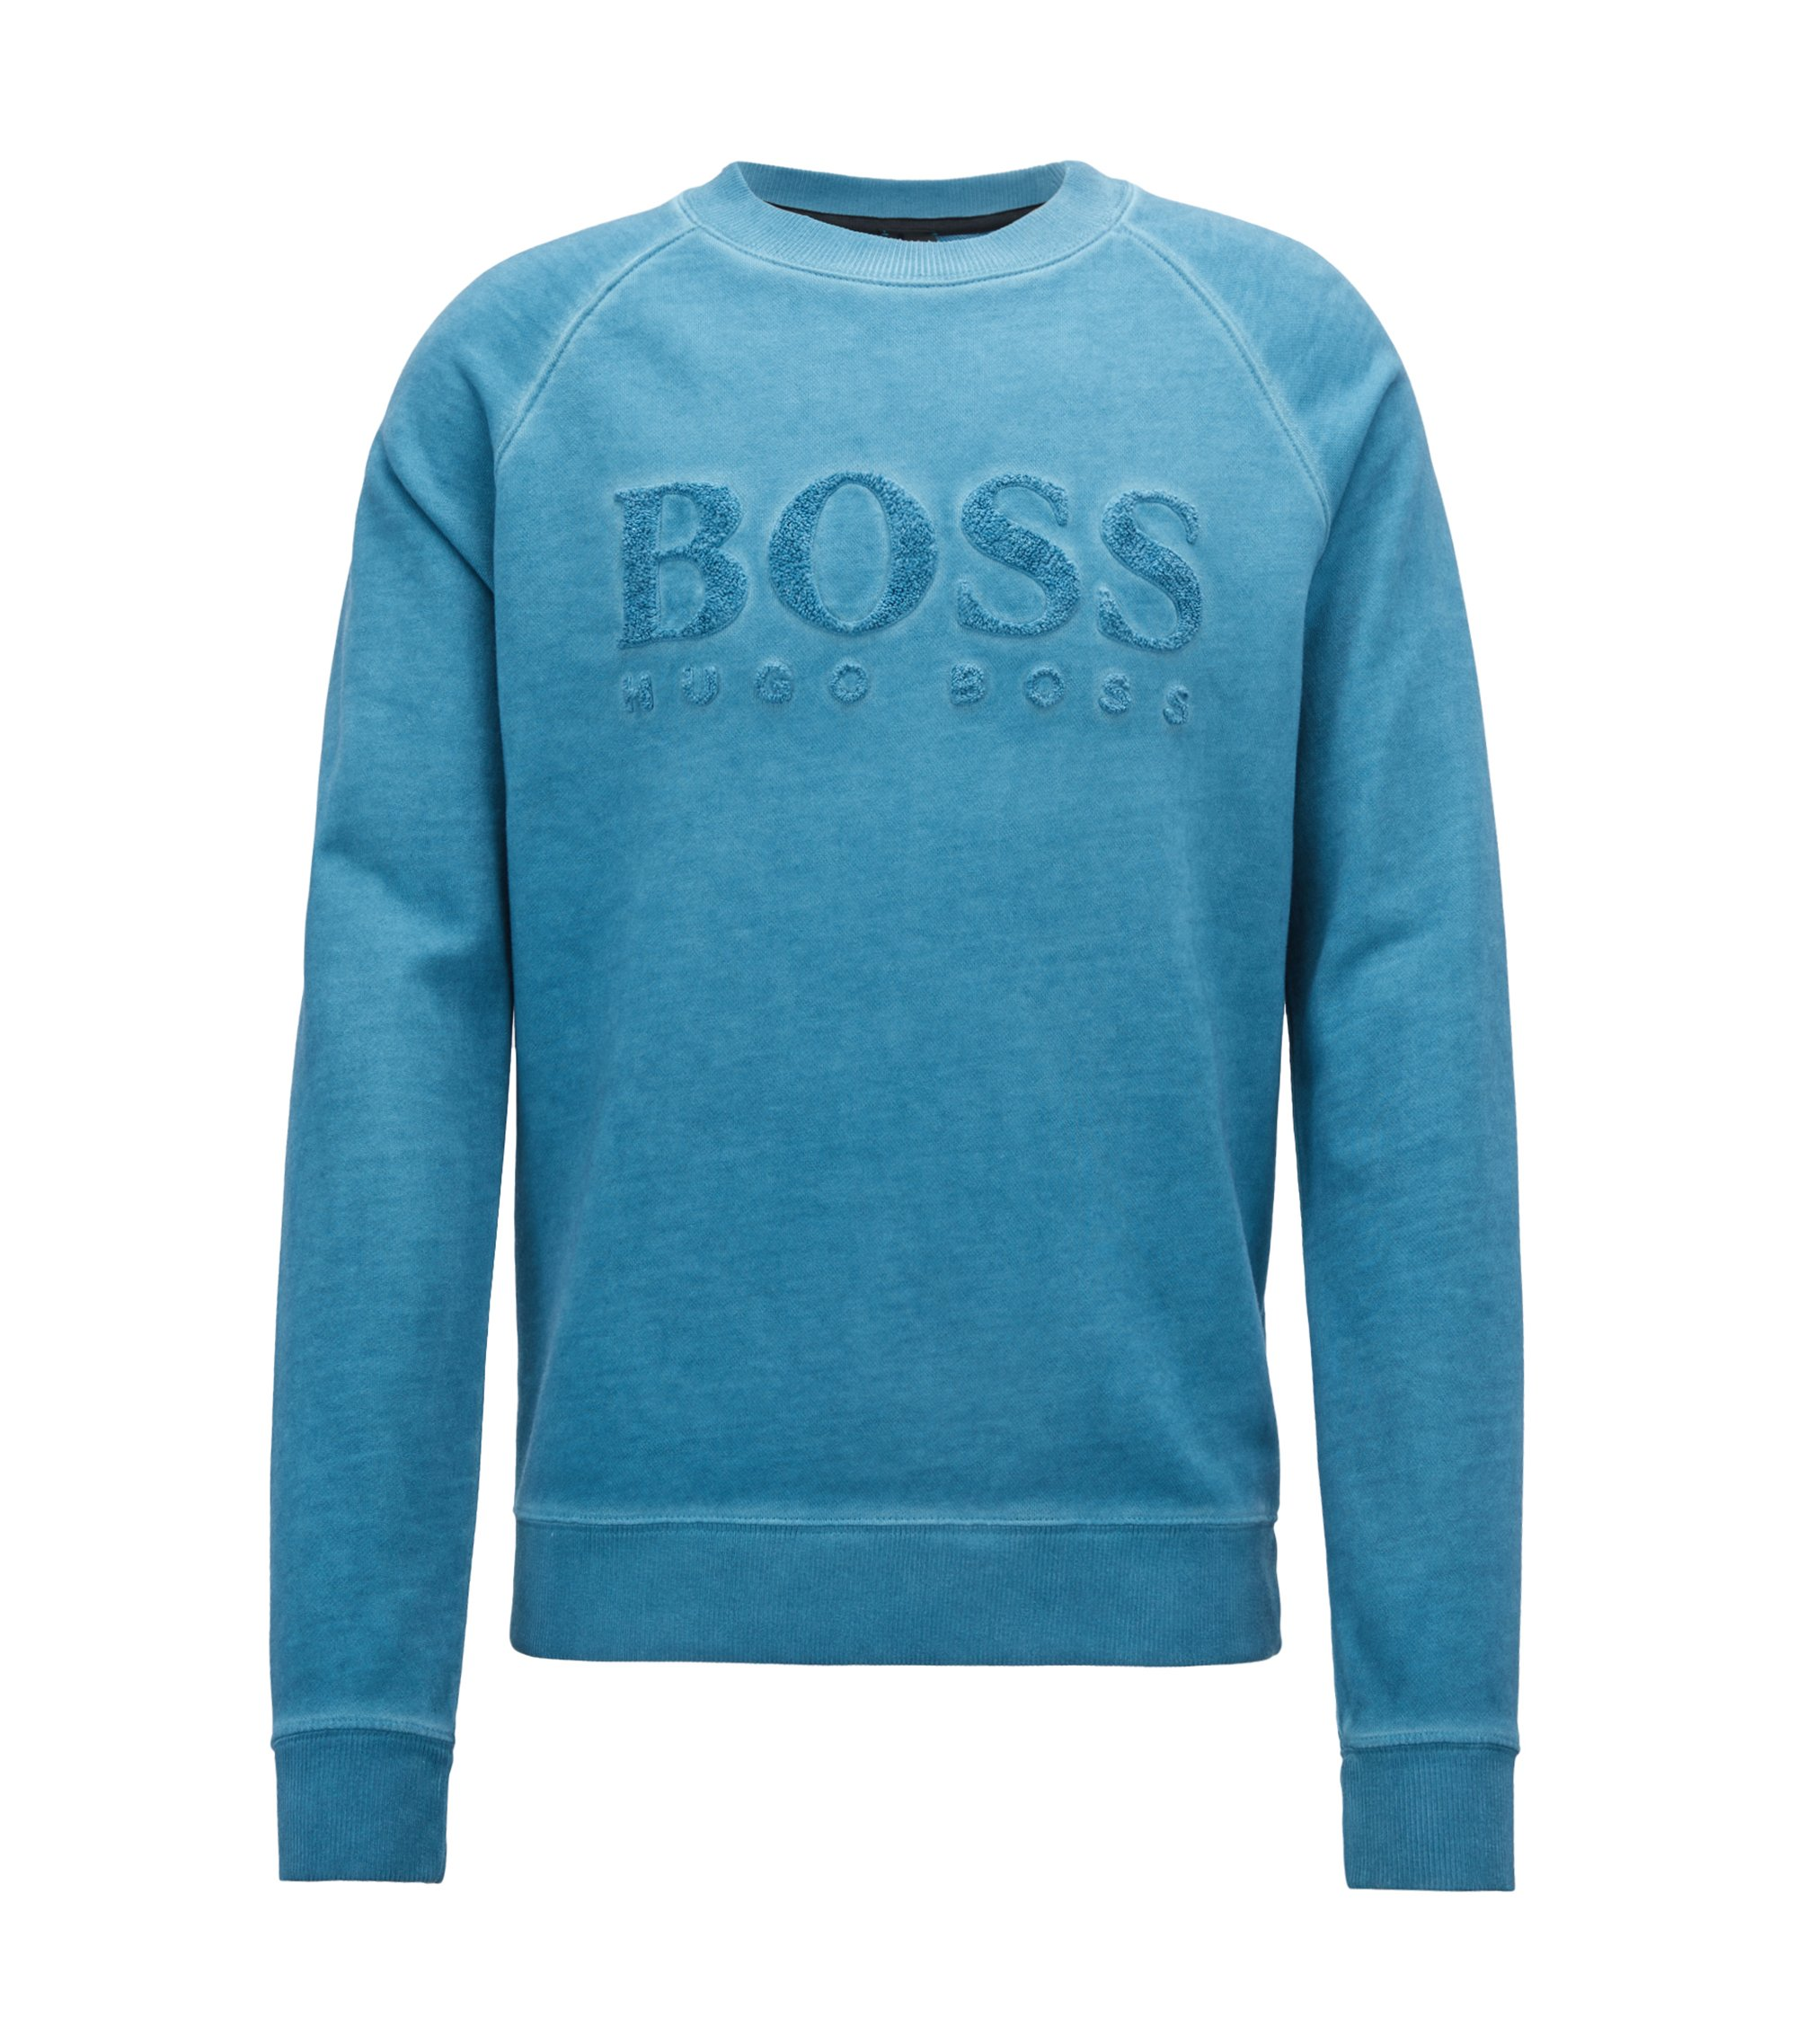 Sweatshirt aus French Terry mit Logo-Stickerei, Hellblau